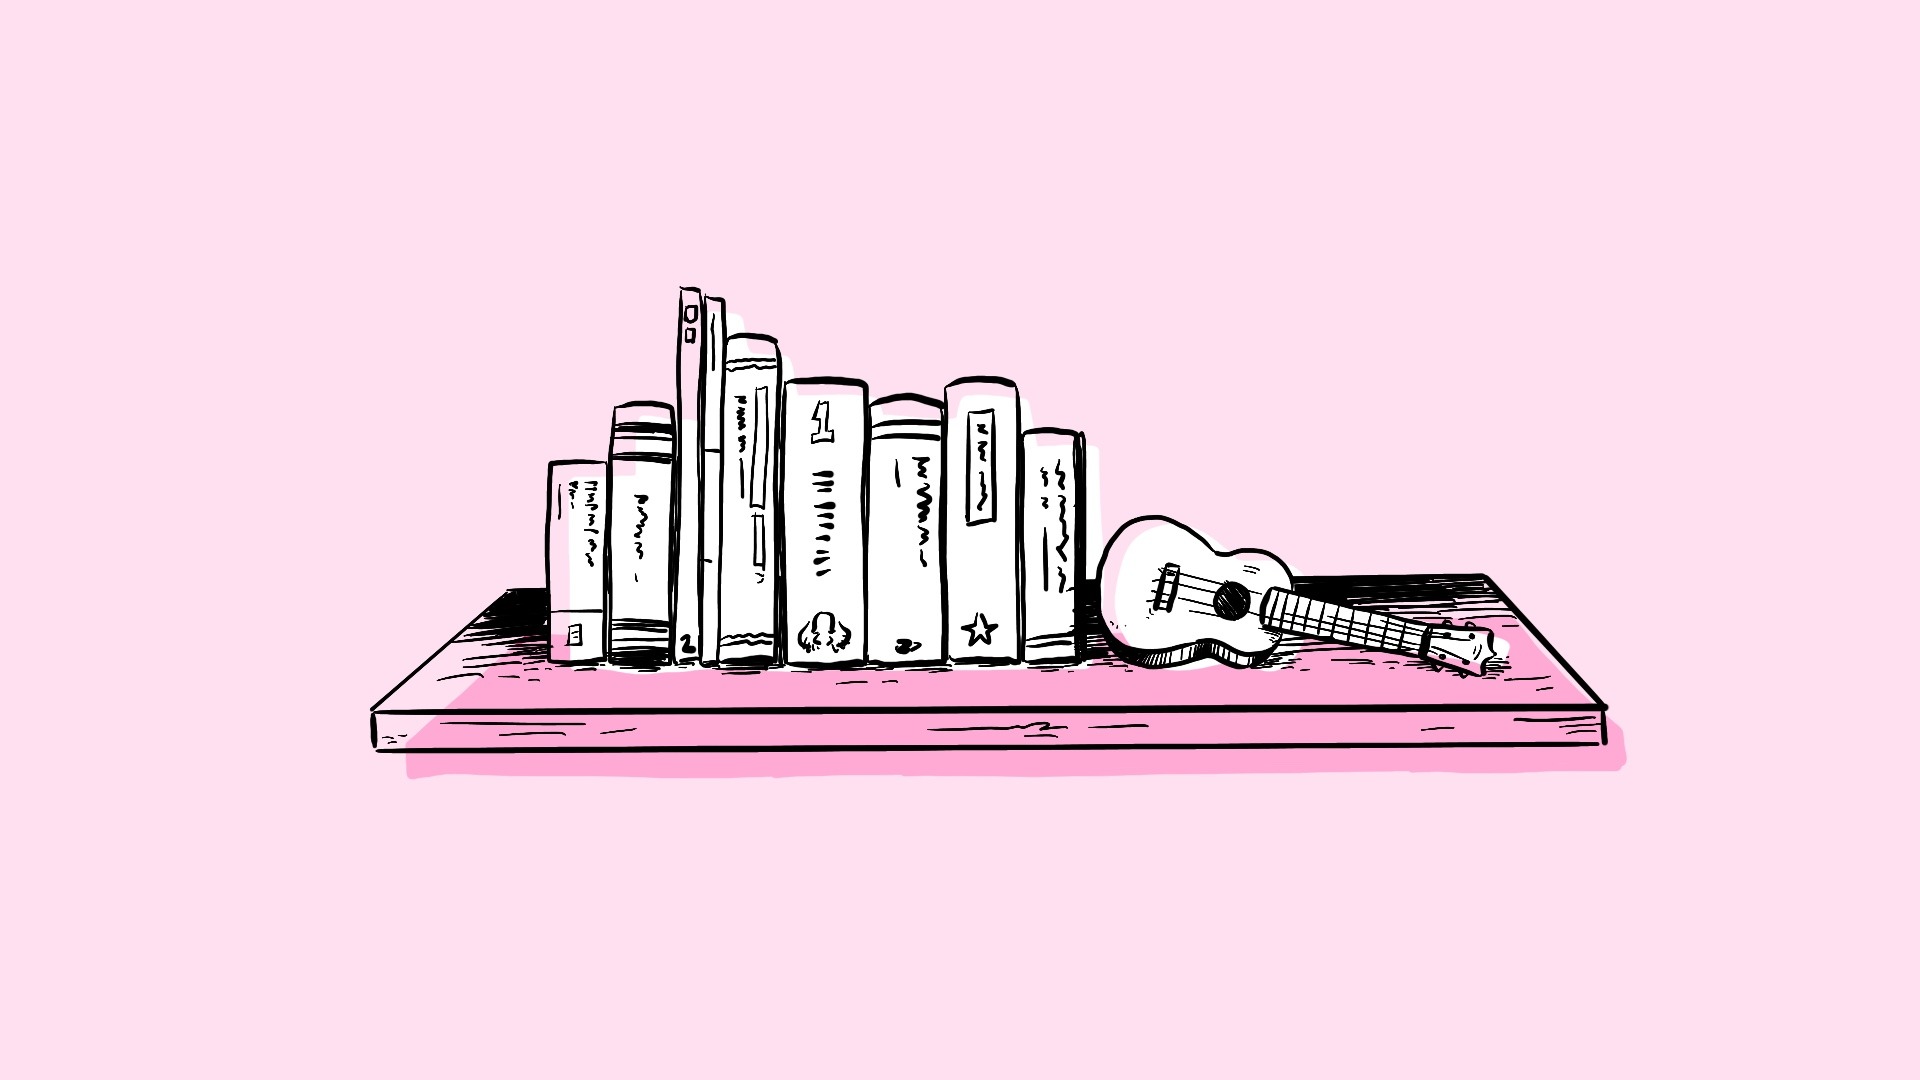 the bookshelf with a ukulele